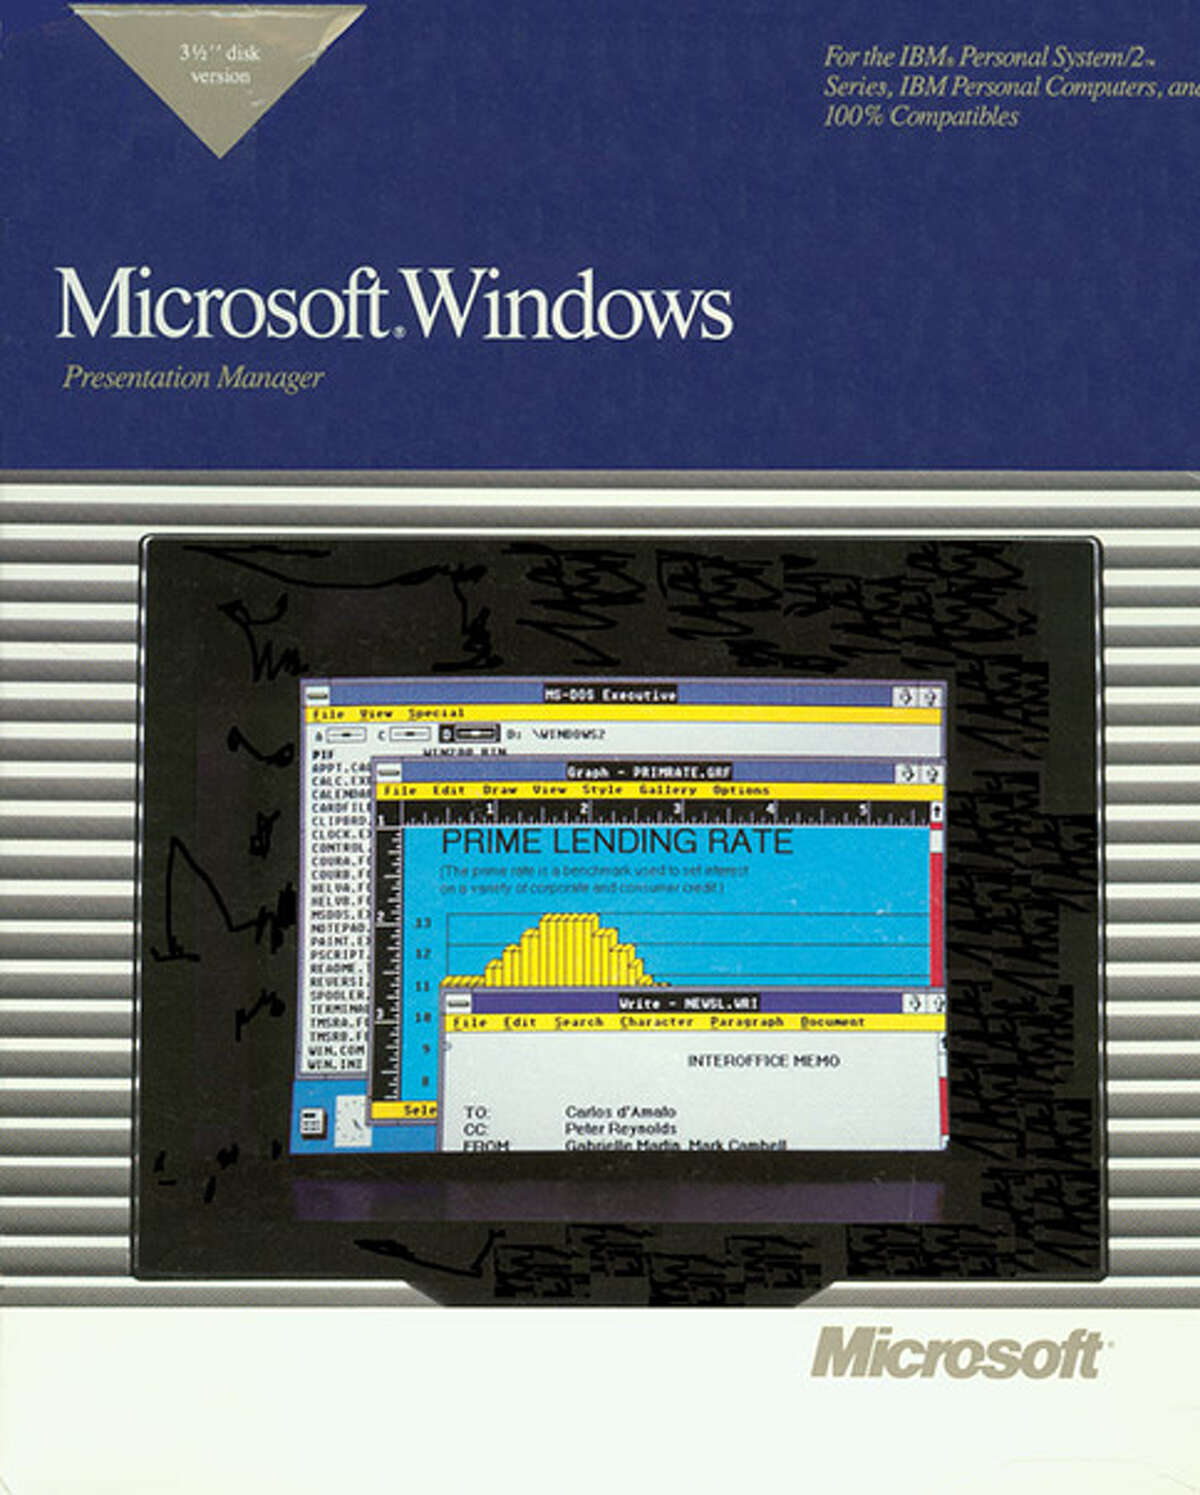 Windows 2 (1987) continues to refine the operating system, which sits atop MS-DOS, and this version is designed to work on the spiffy new Intel 286 processor.